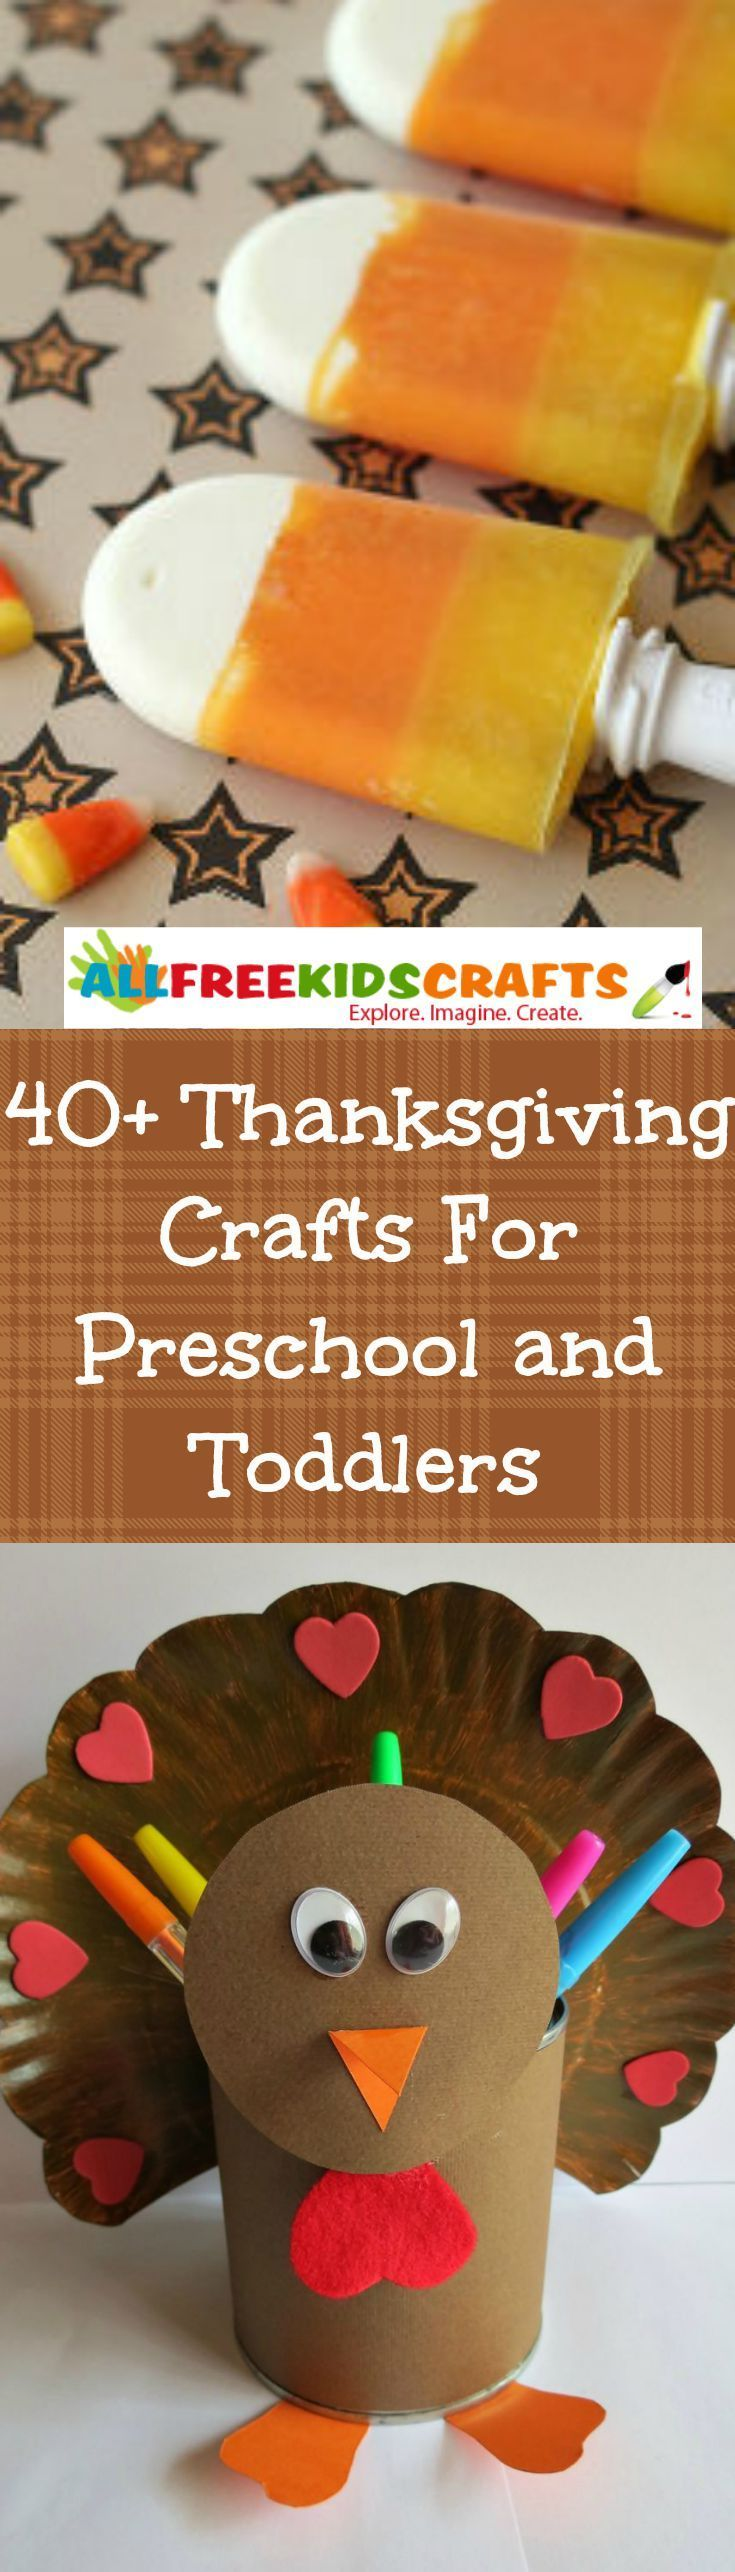 fall craft ideas for teens 596 best thanksgiving craft activities images on 6548